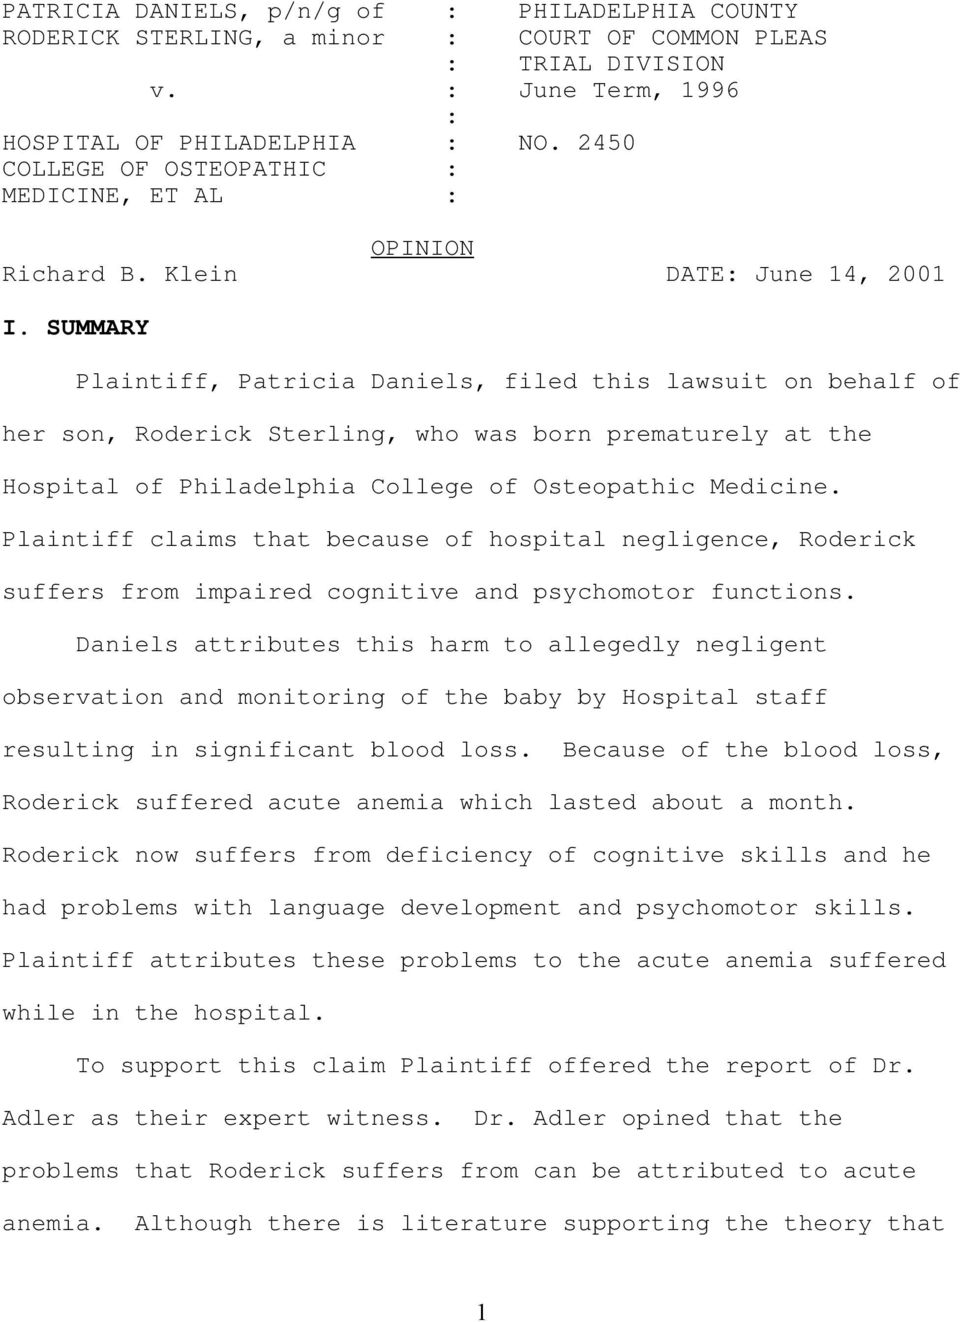 SUMMARY Plaintiff, Patricia Daniels, filed this lawsuit on behalf of her son, Roderick Sterling, who was born prematurely at the Hospital of Philadelphia College of Osteopathic Medicine.